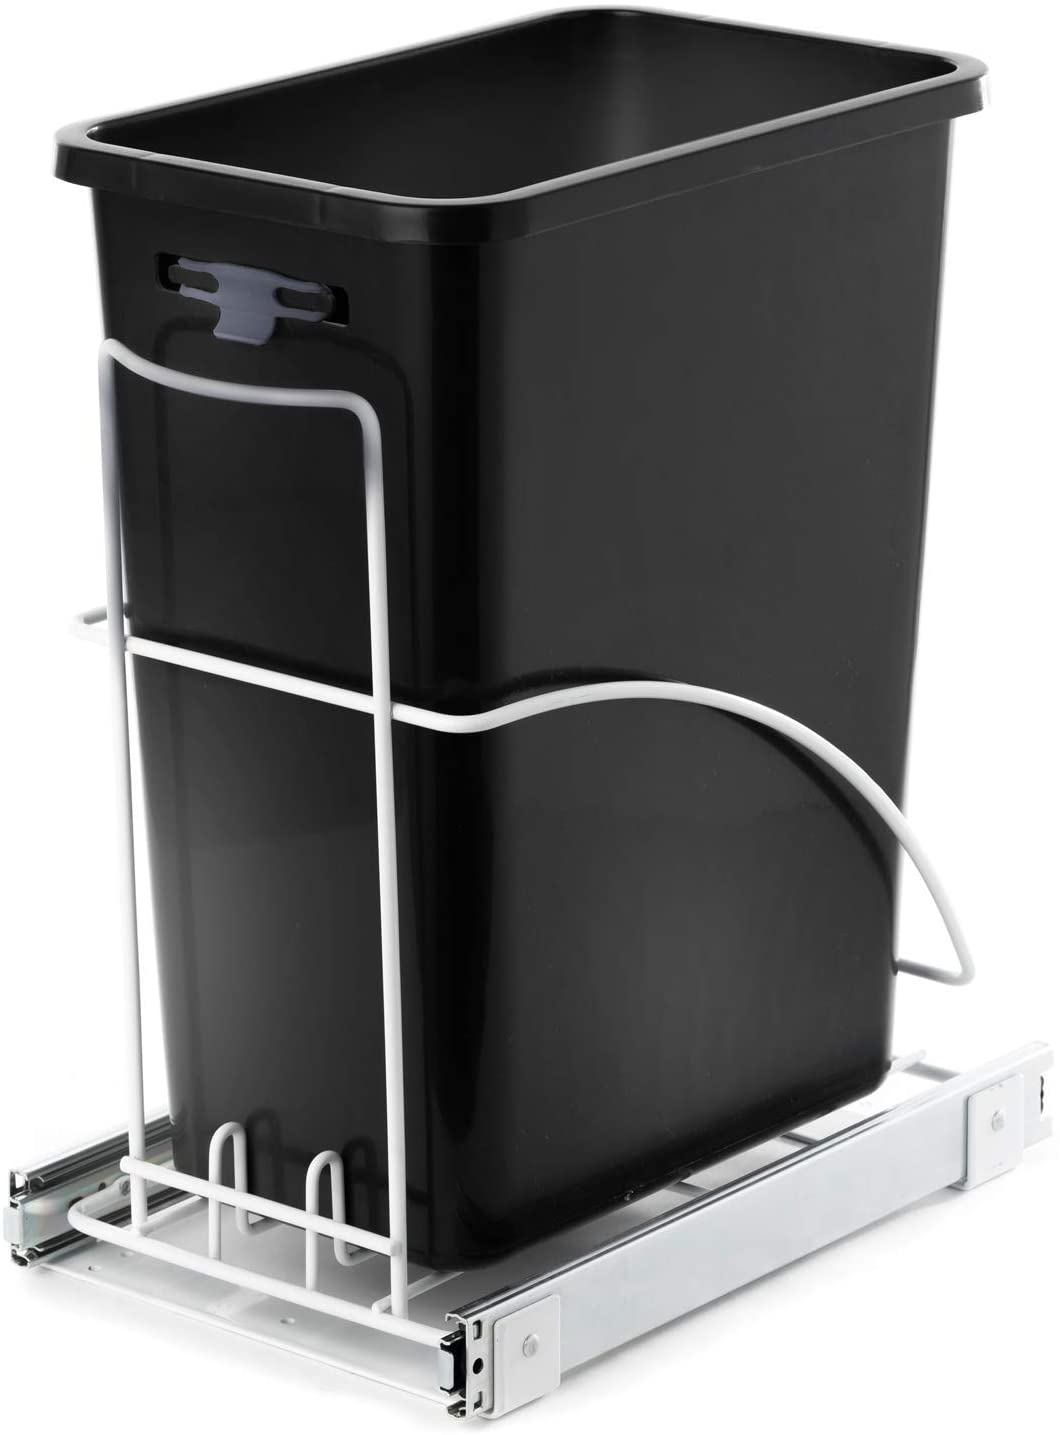 Home Zone Living 7.6 Gallon Kitchen Trash Pull SEAL limited product - Under C Can Out Japan's largest assortment